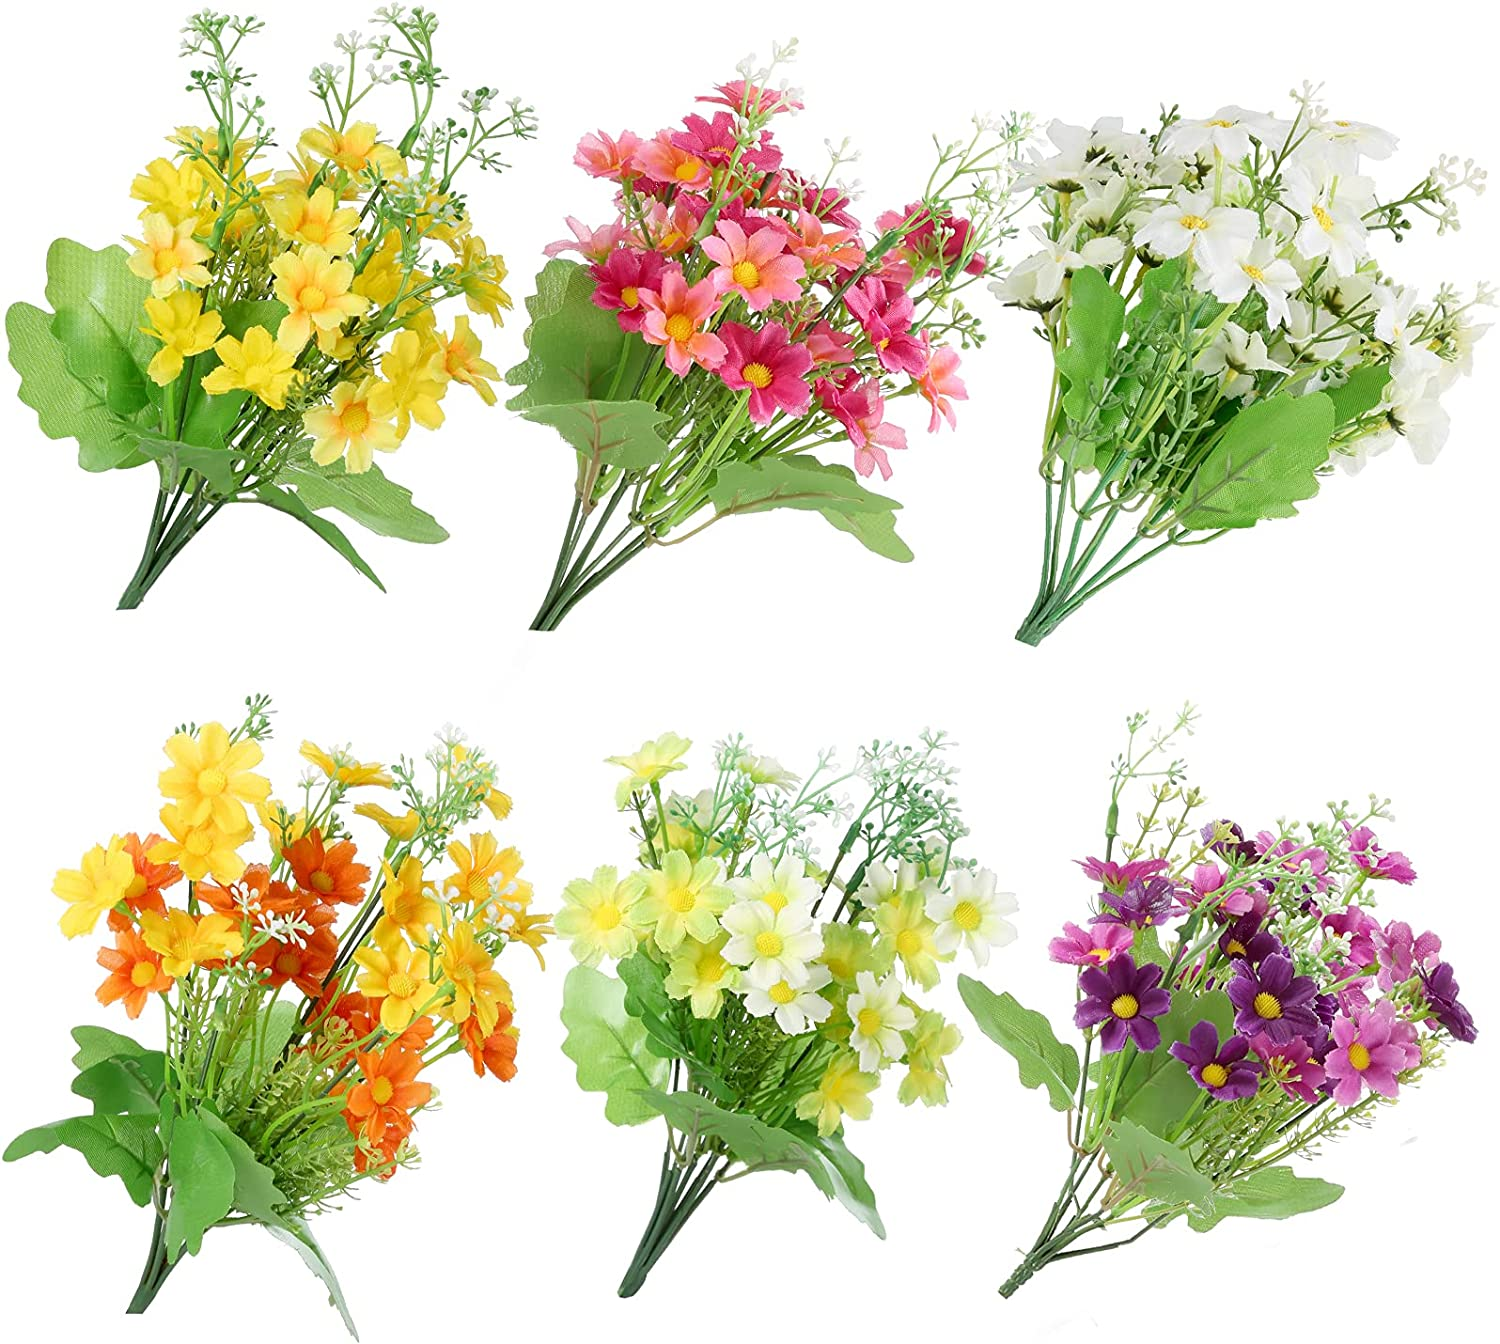 Omldggr 6 Pieces Faux Silk Daisy Artificial Flower Plastic Flowers Plants Plastic Bushes for Indoor Outside Hanging Planter Home Garden Decor (Yellow, Purple, White,Orange,Pink,Green)